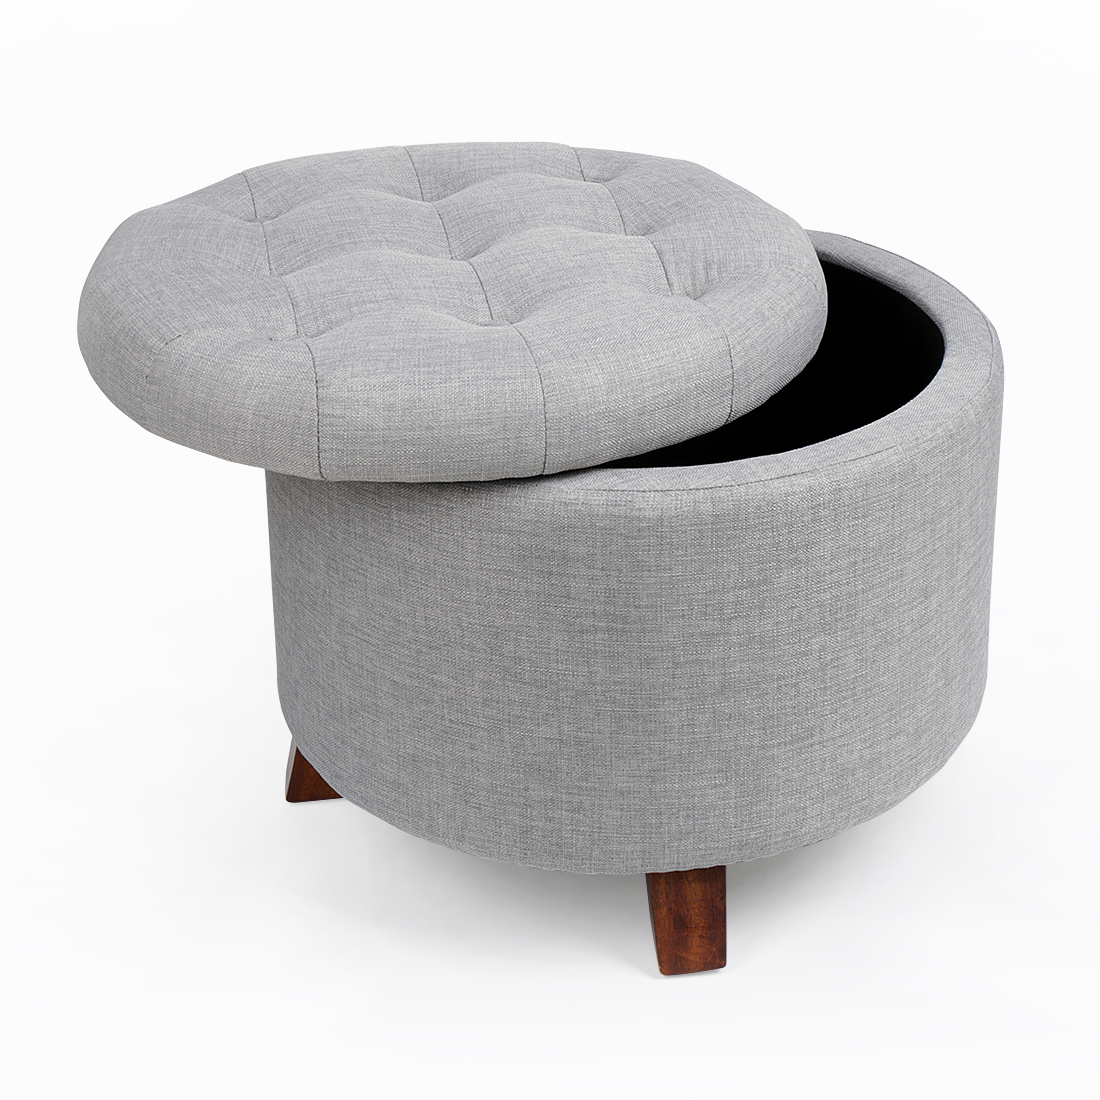 Soft Round Footstool Storage Ottoman Stool With Button